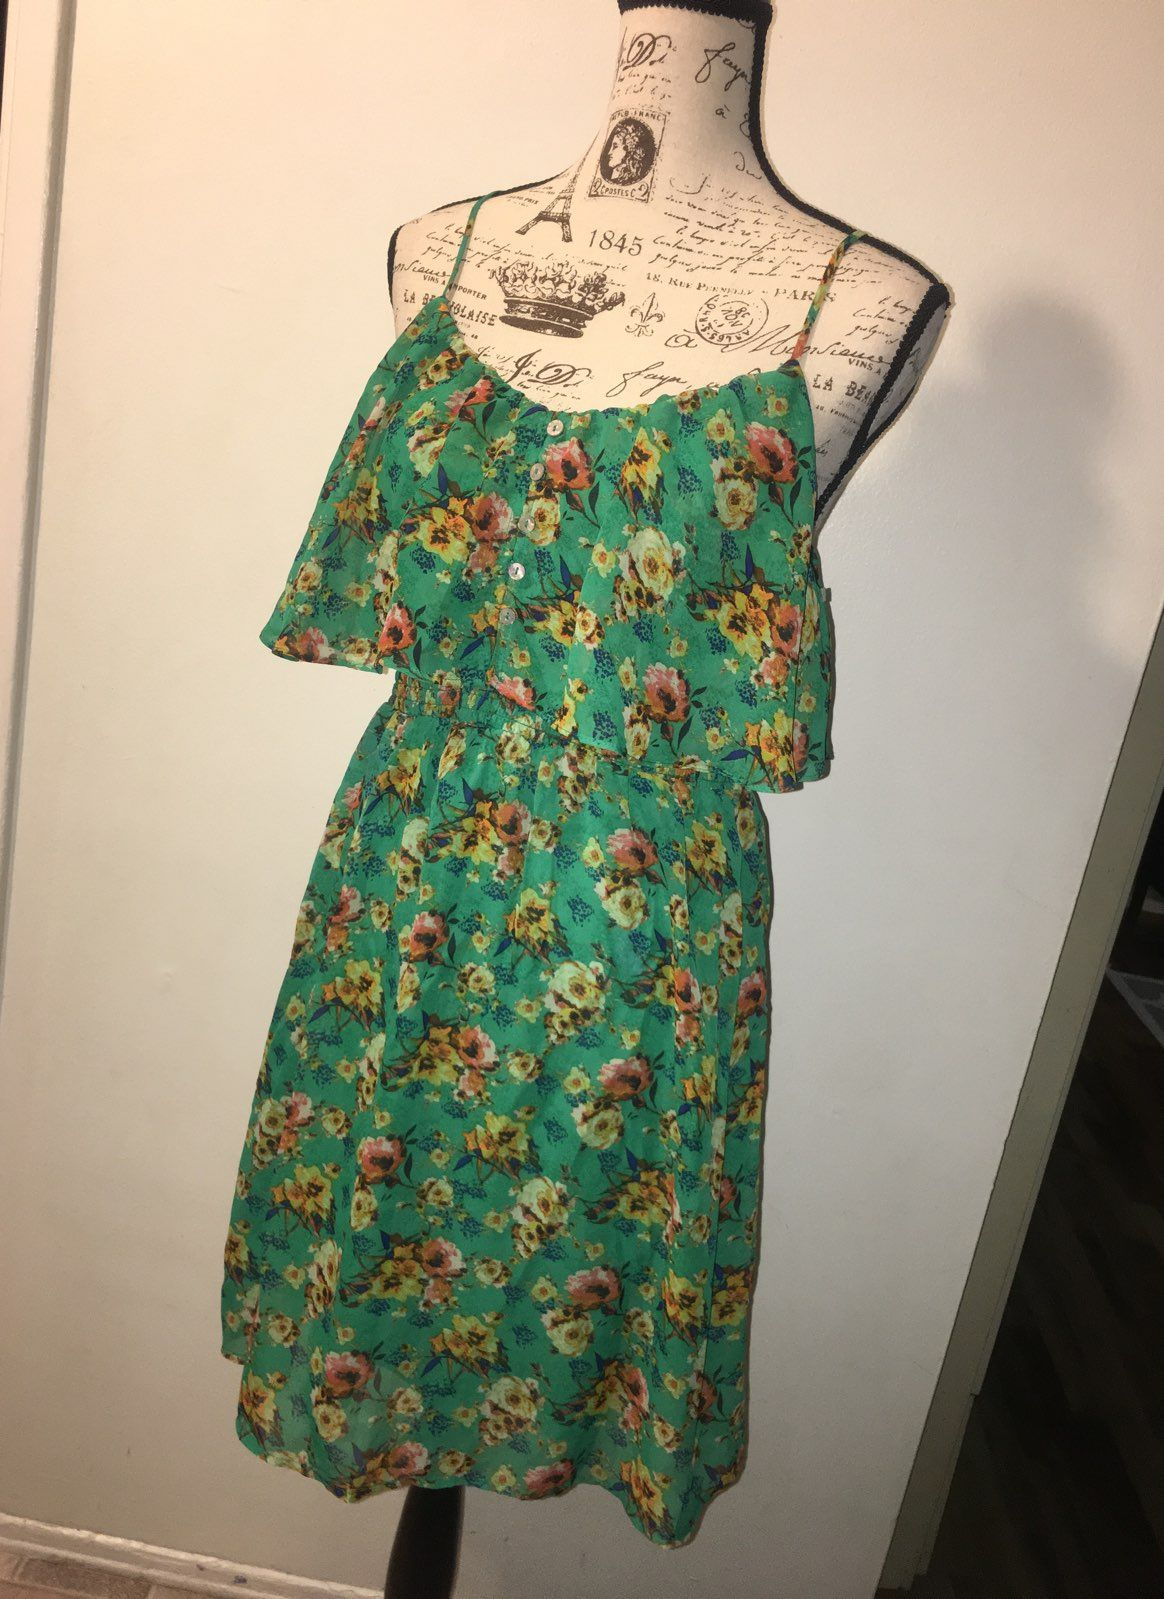 cce940866f8 xhilaration Green Floral Spring Dress - Mercari  The Selling App ...